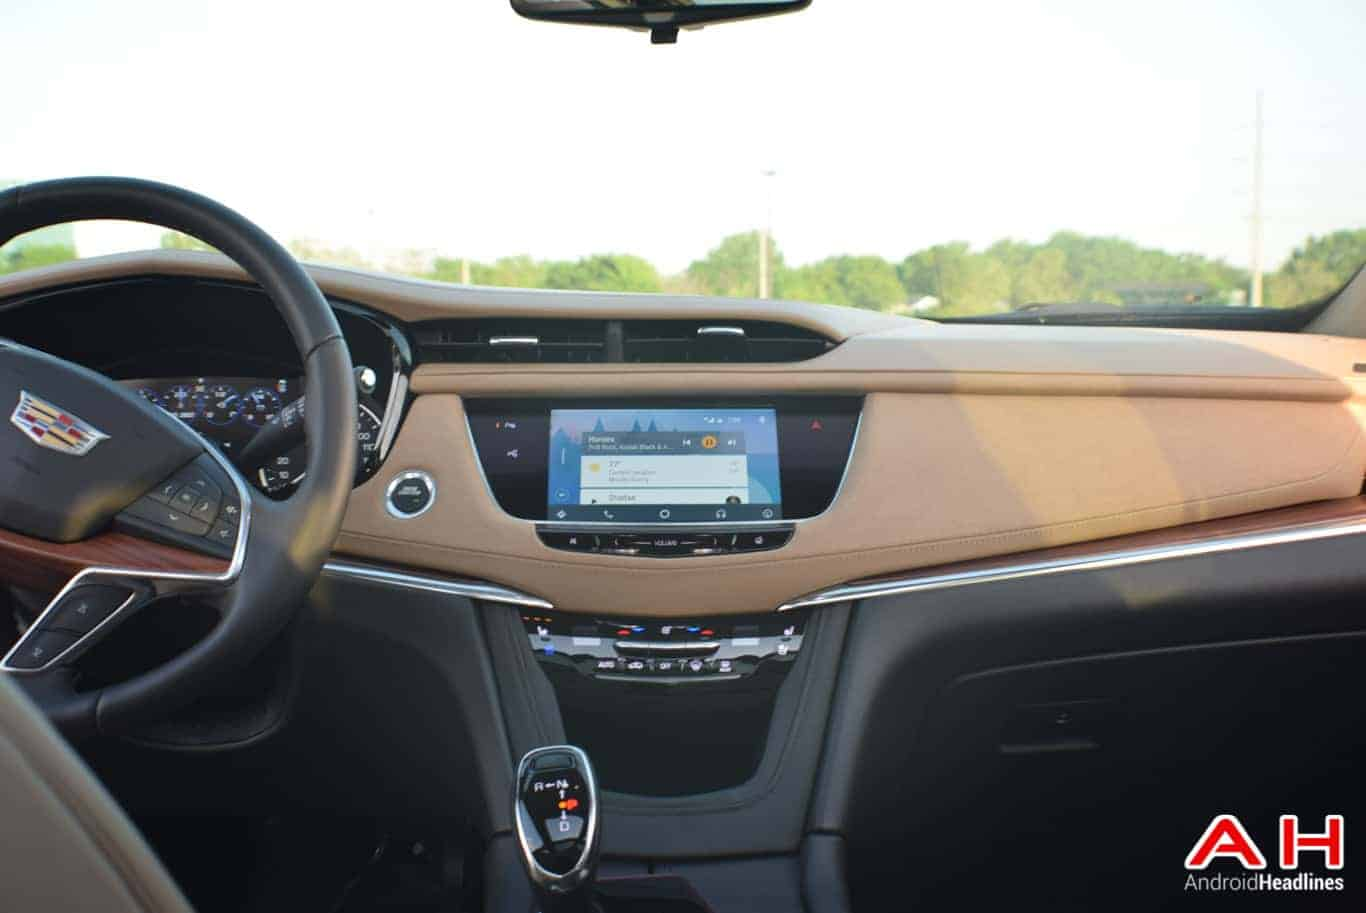 2017 Cadillac XT5 Android Auto Review AM AH 71